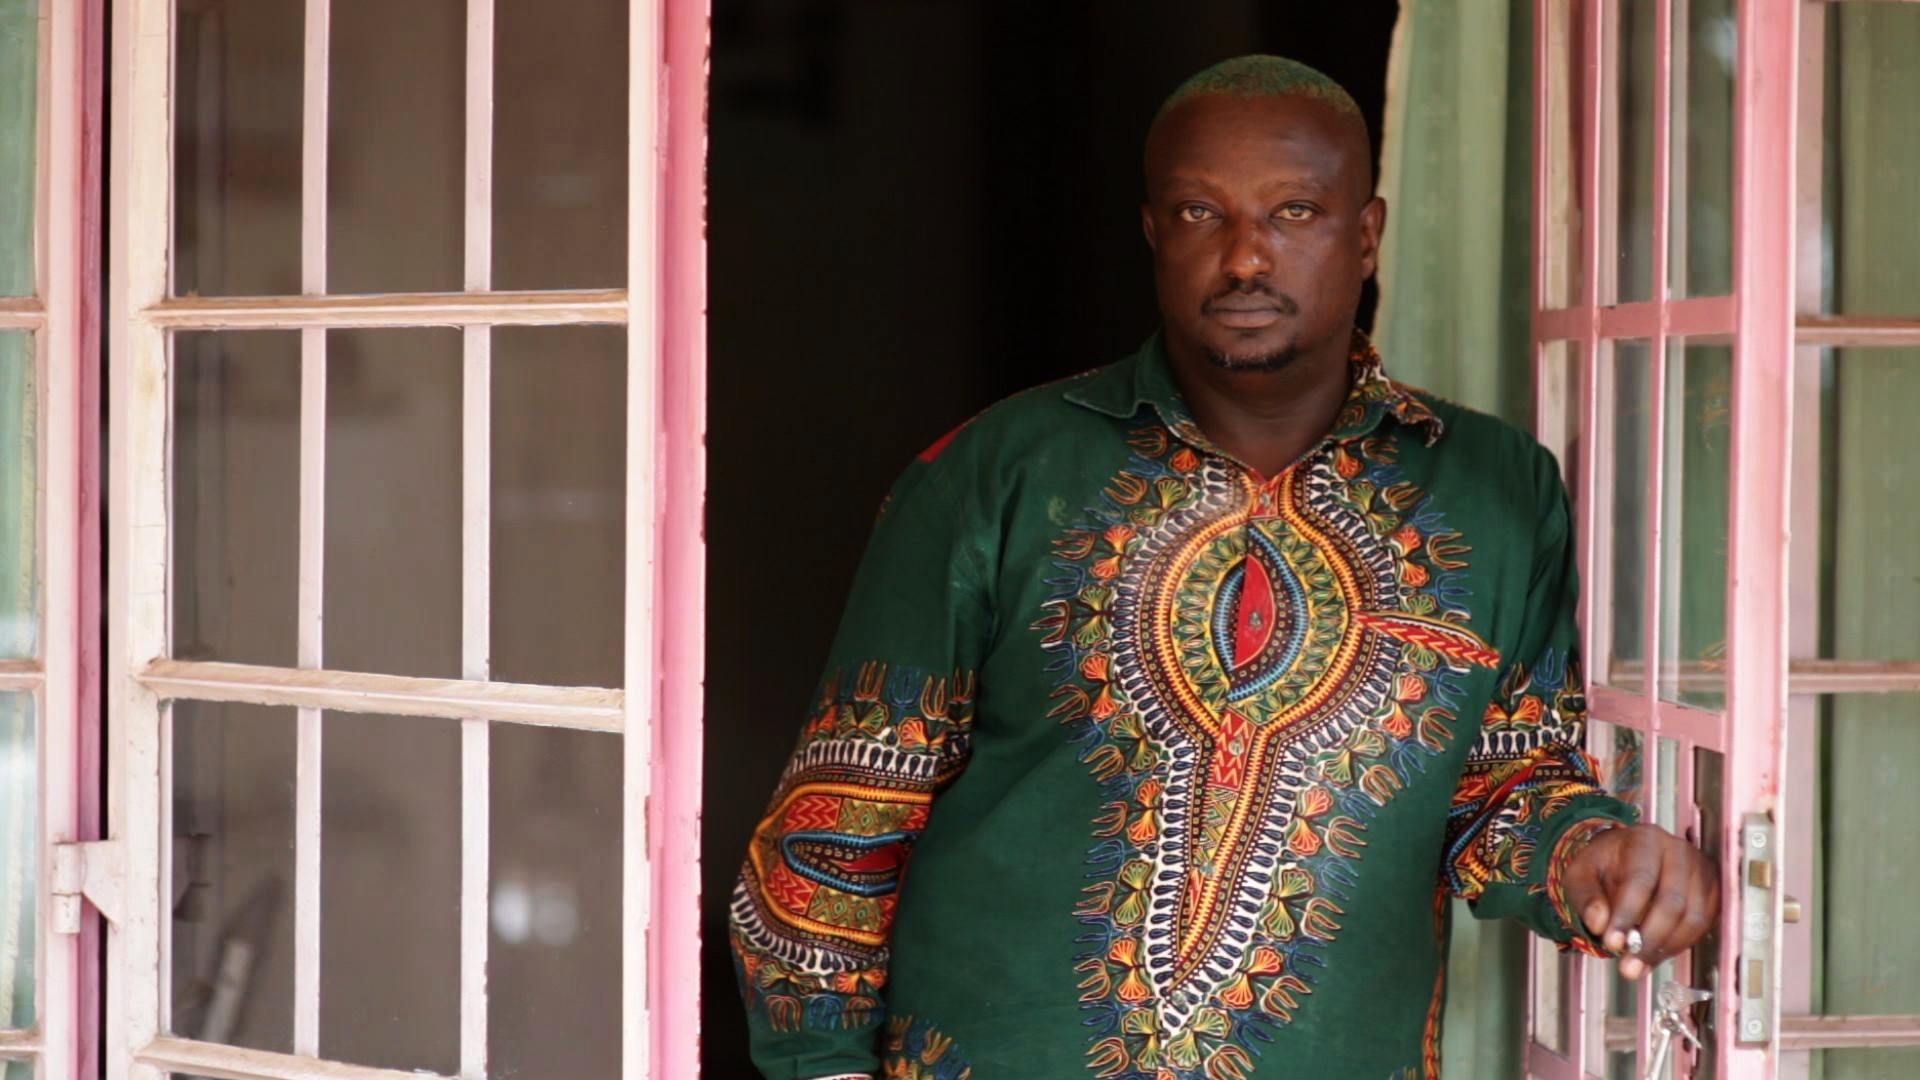 Kenyan writer BINYAVANGA WAINAINA, who grew up in a postcolonial world full of promise, reflects on how it feels to be on the receiving end of the gaze of pity that humanitarianism brought into his world.